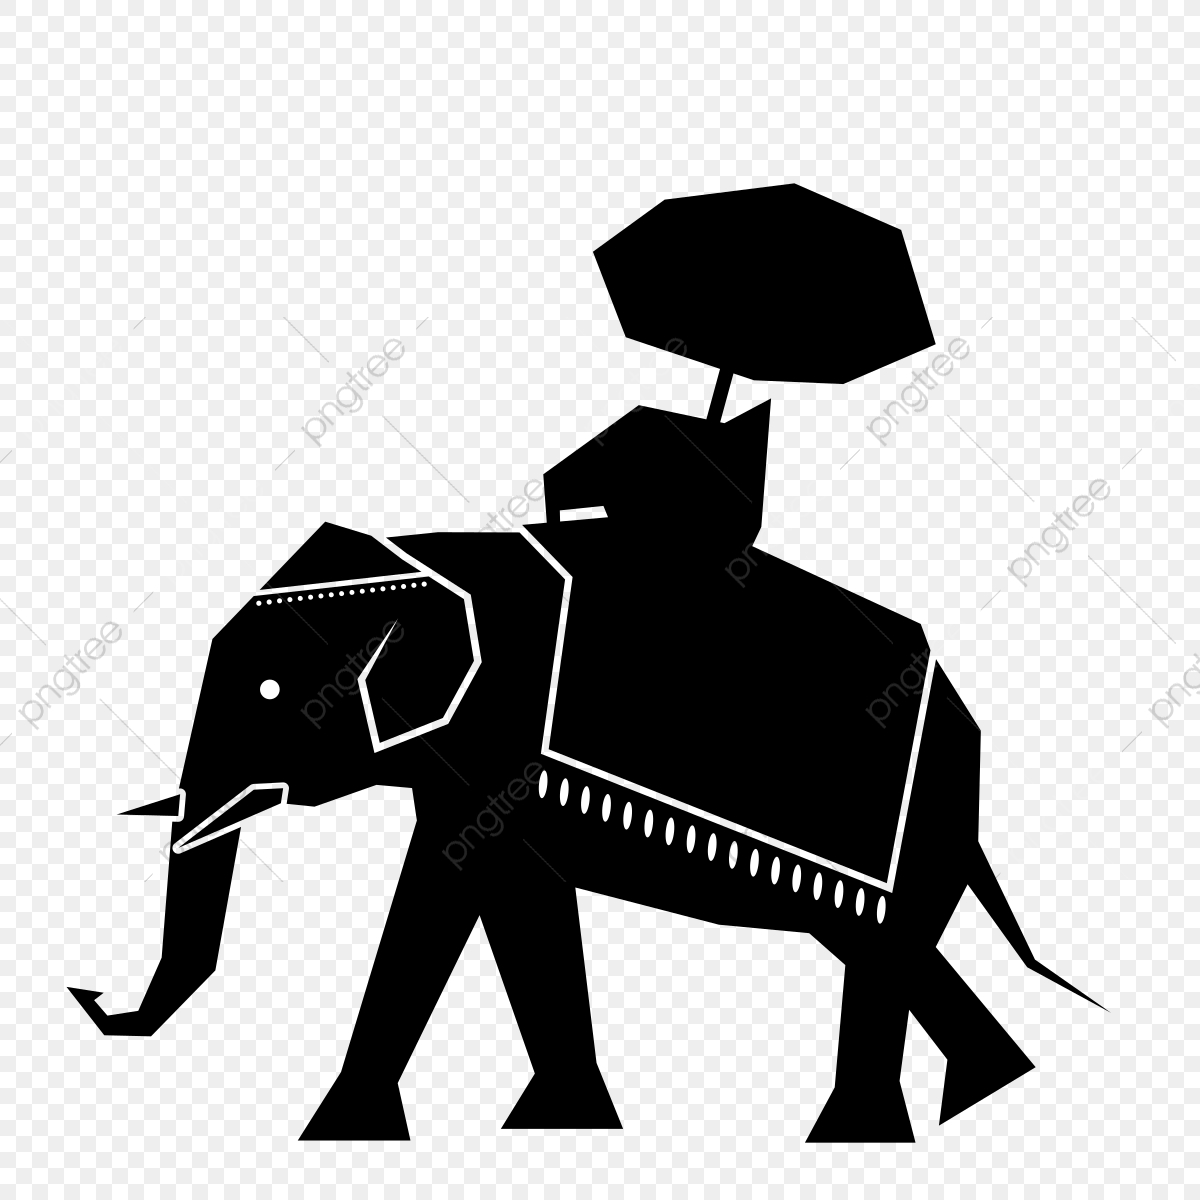 Thailands Elephant Elephant Clipart Elephant Thailand Png And Vector With Transparent Background For Free Download Polish your personal project or design with these elephant transparent png images, make it even more personalized and more attractive. https pngtree com freepng thailands elephant 3718873 html